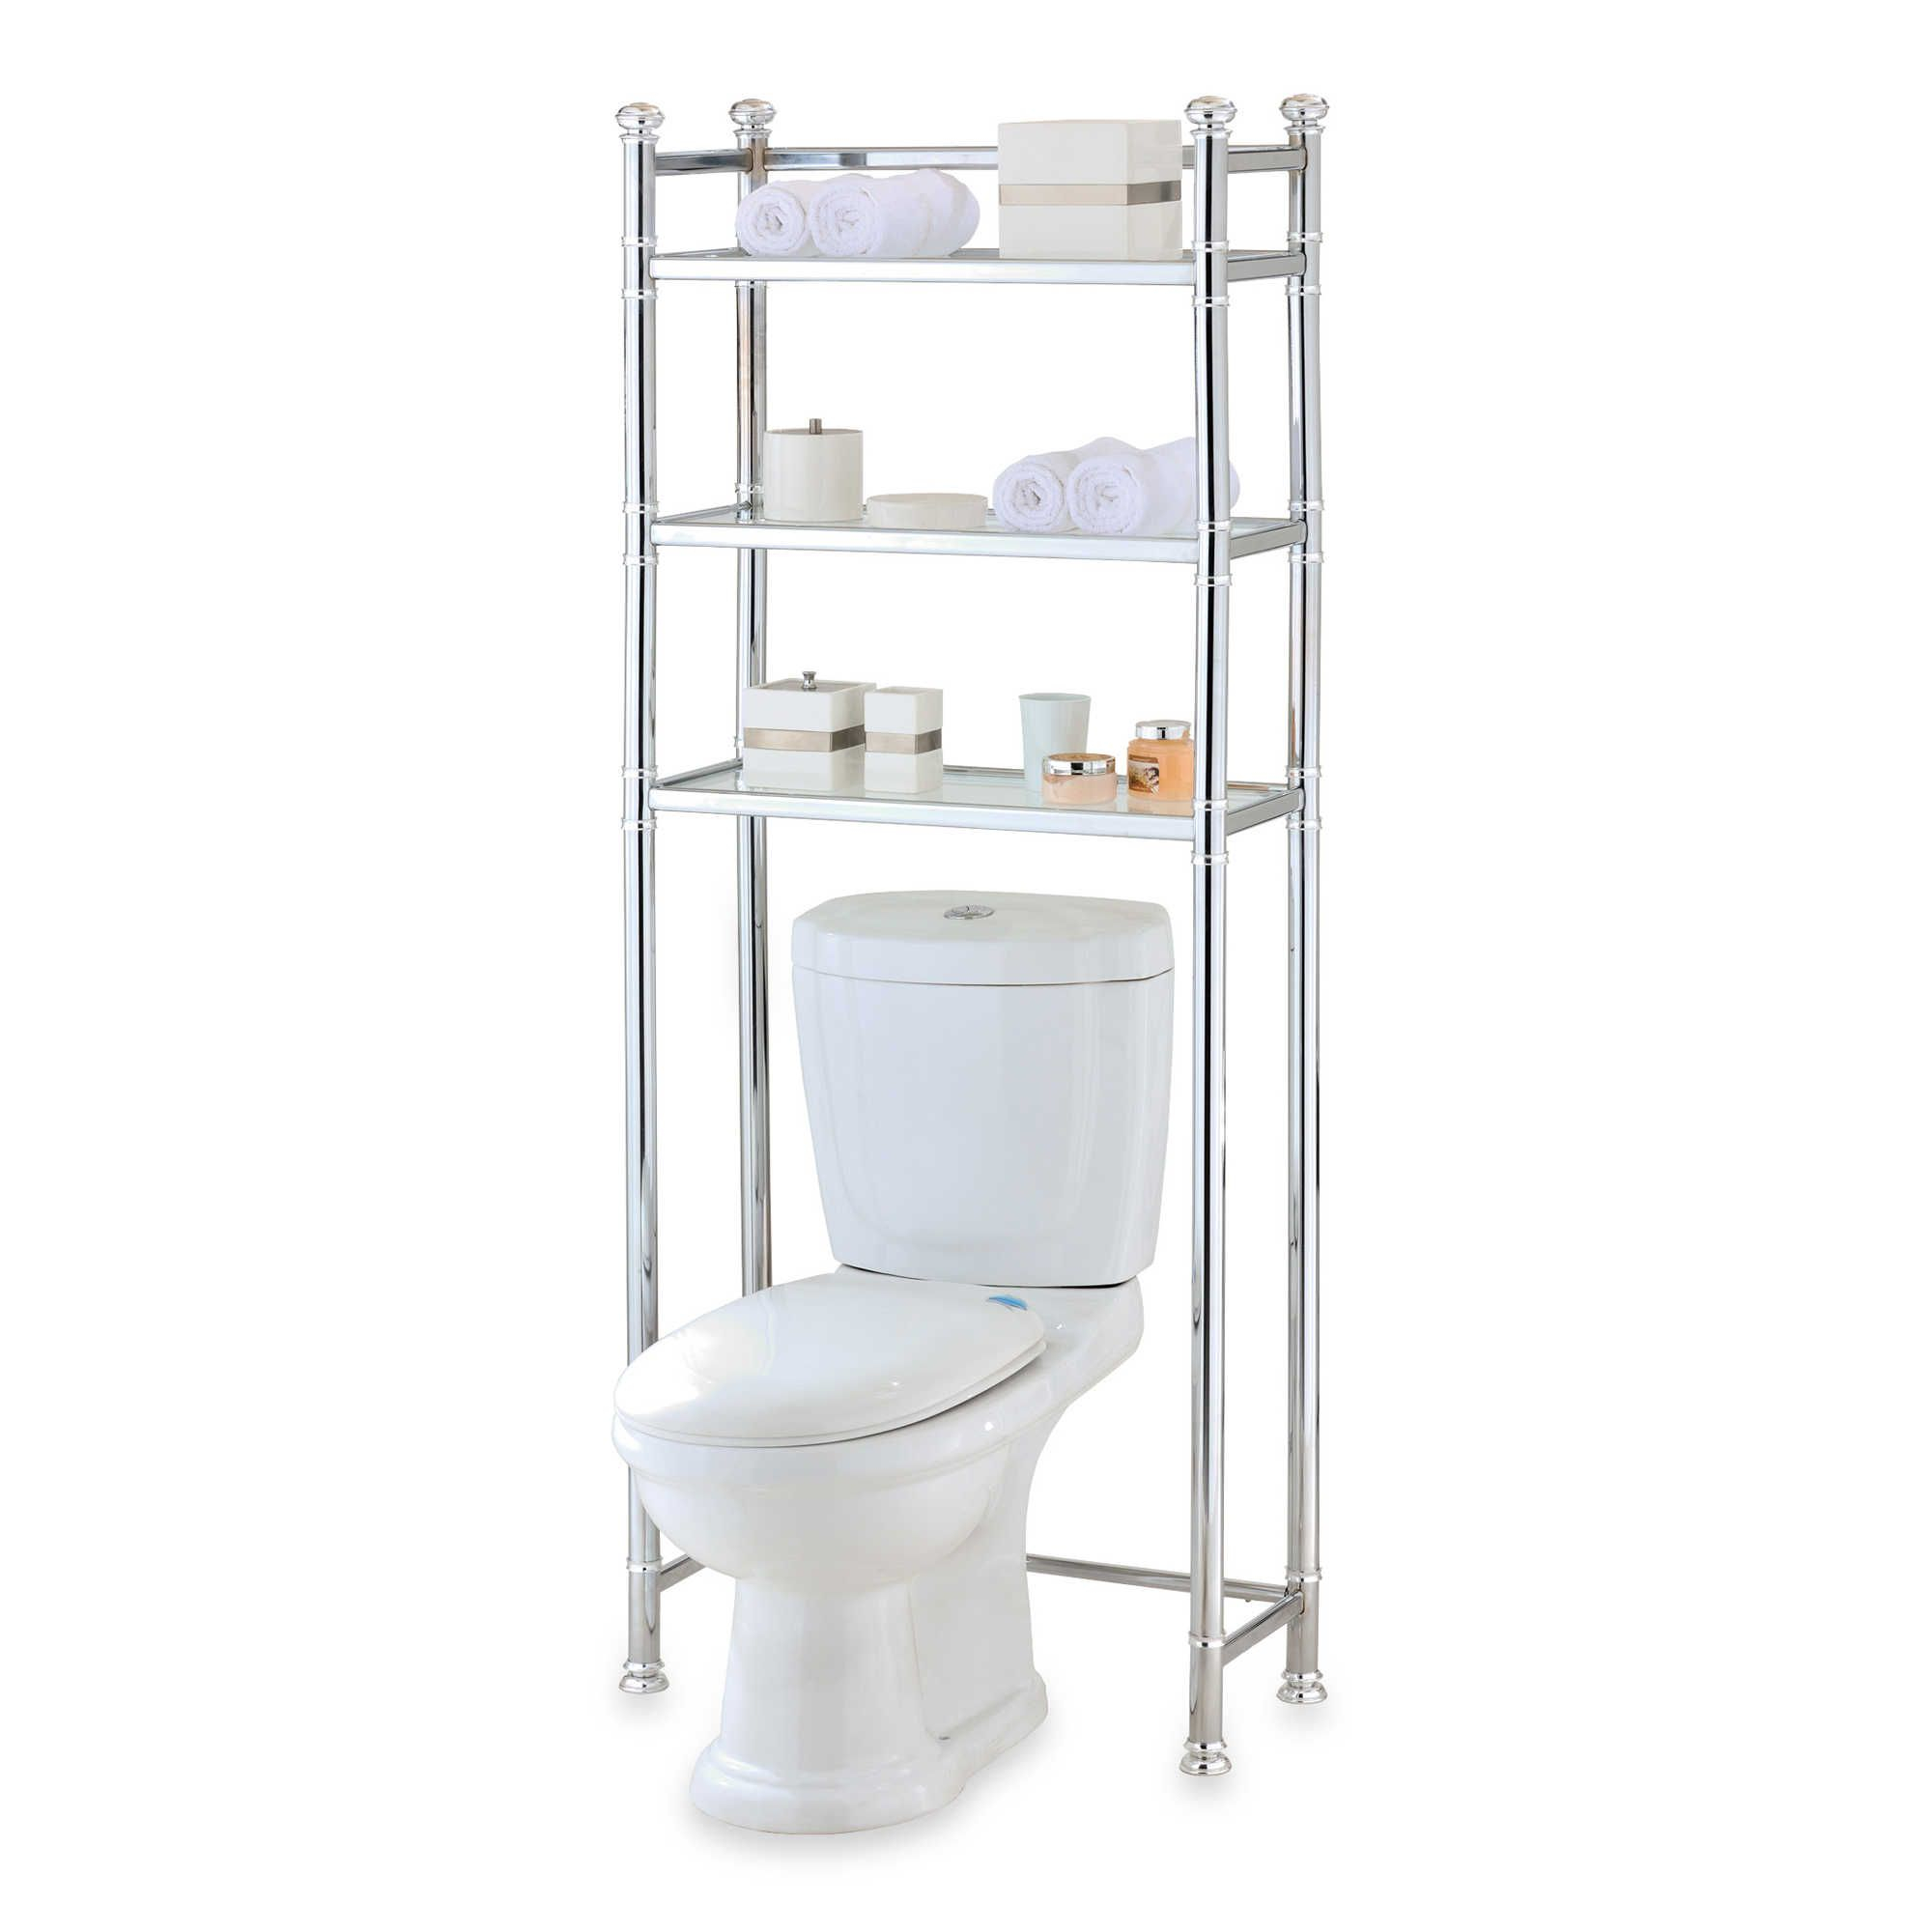 No Tools Chromeglass Bathroom Space Saver intended for size 2000 X 2000